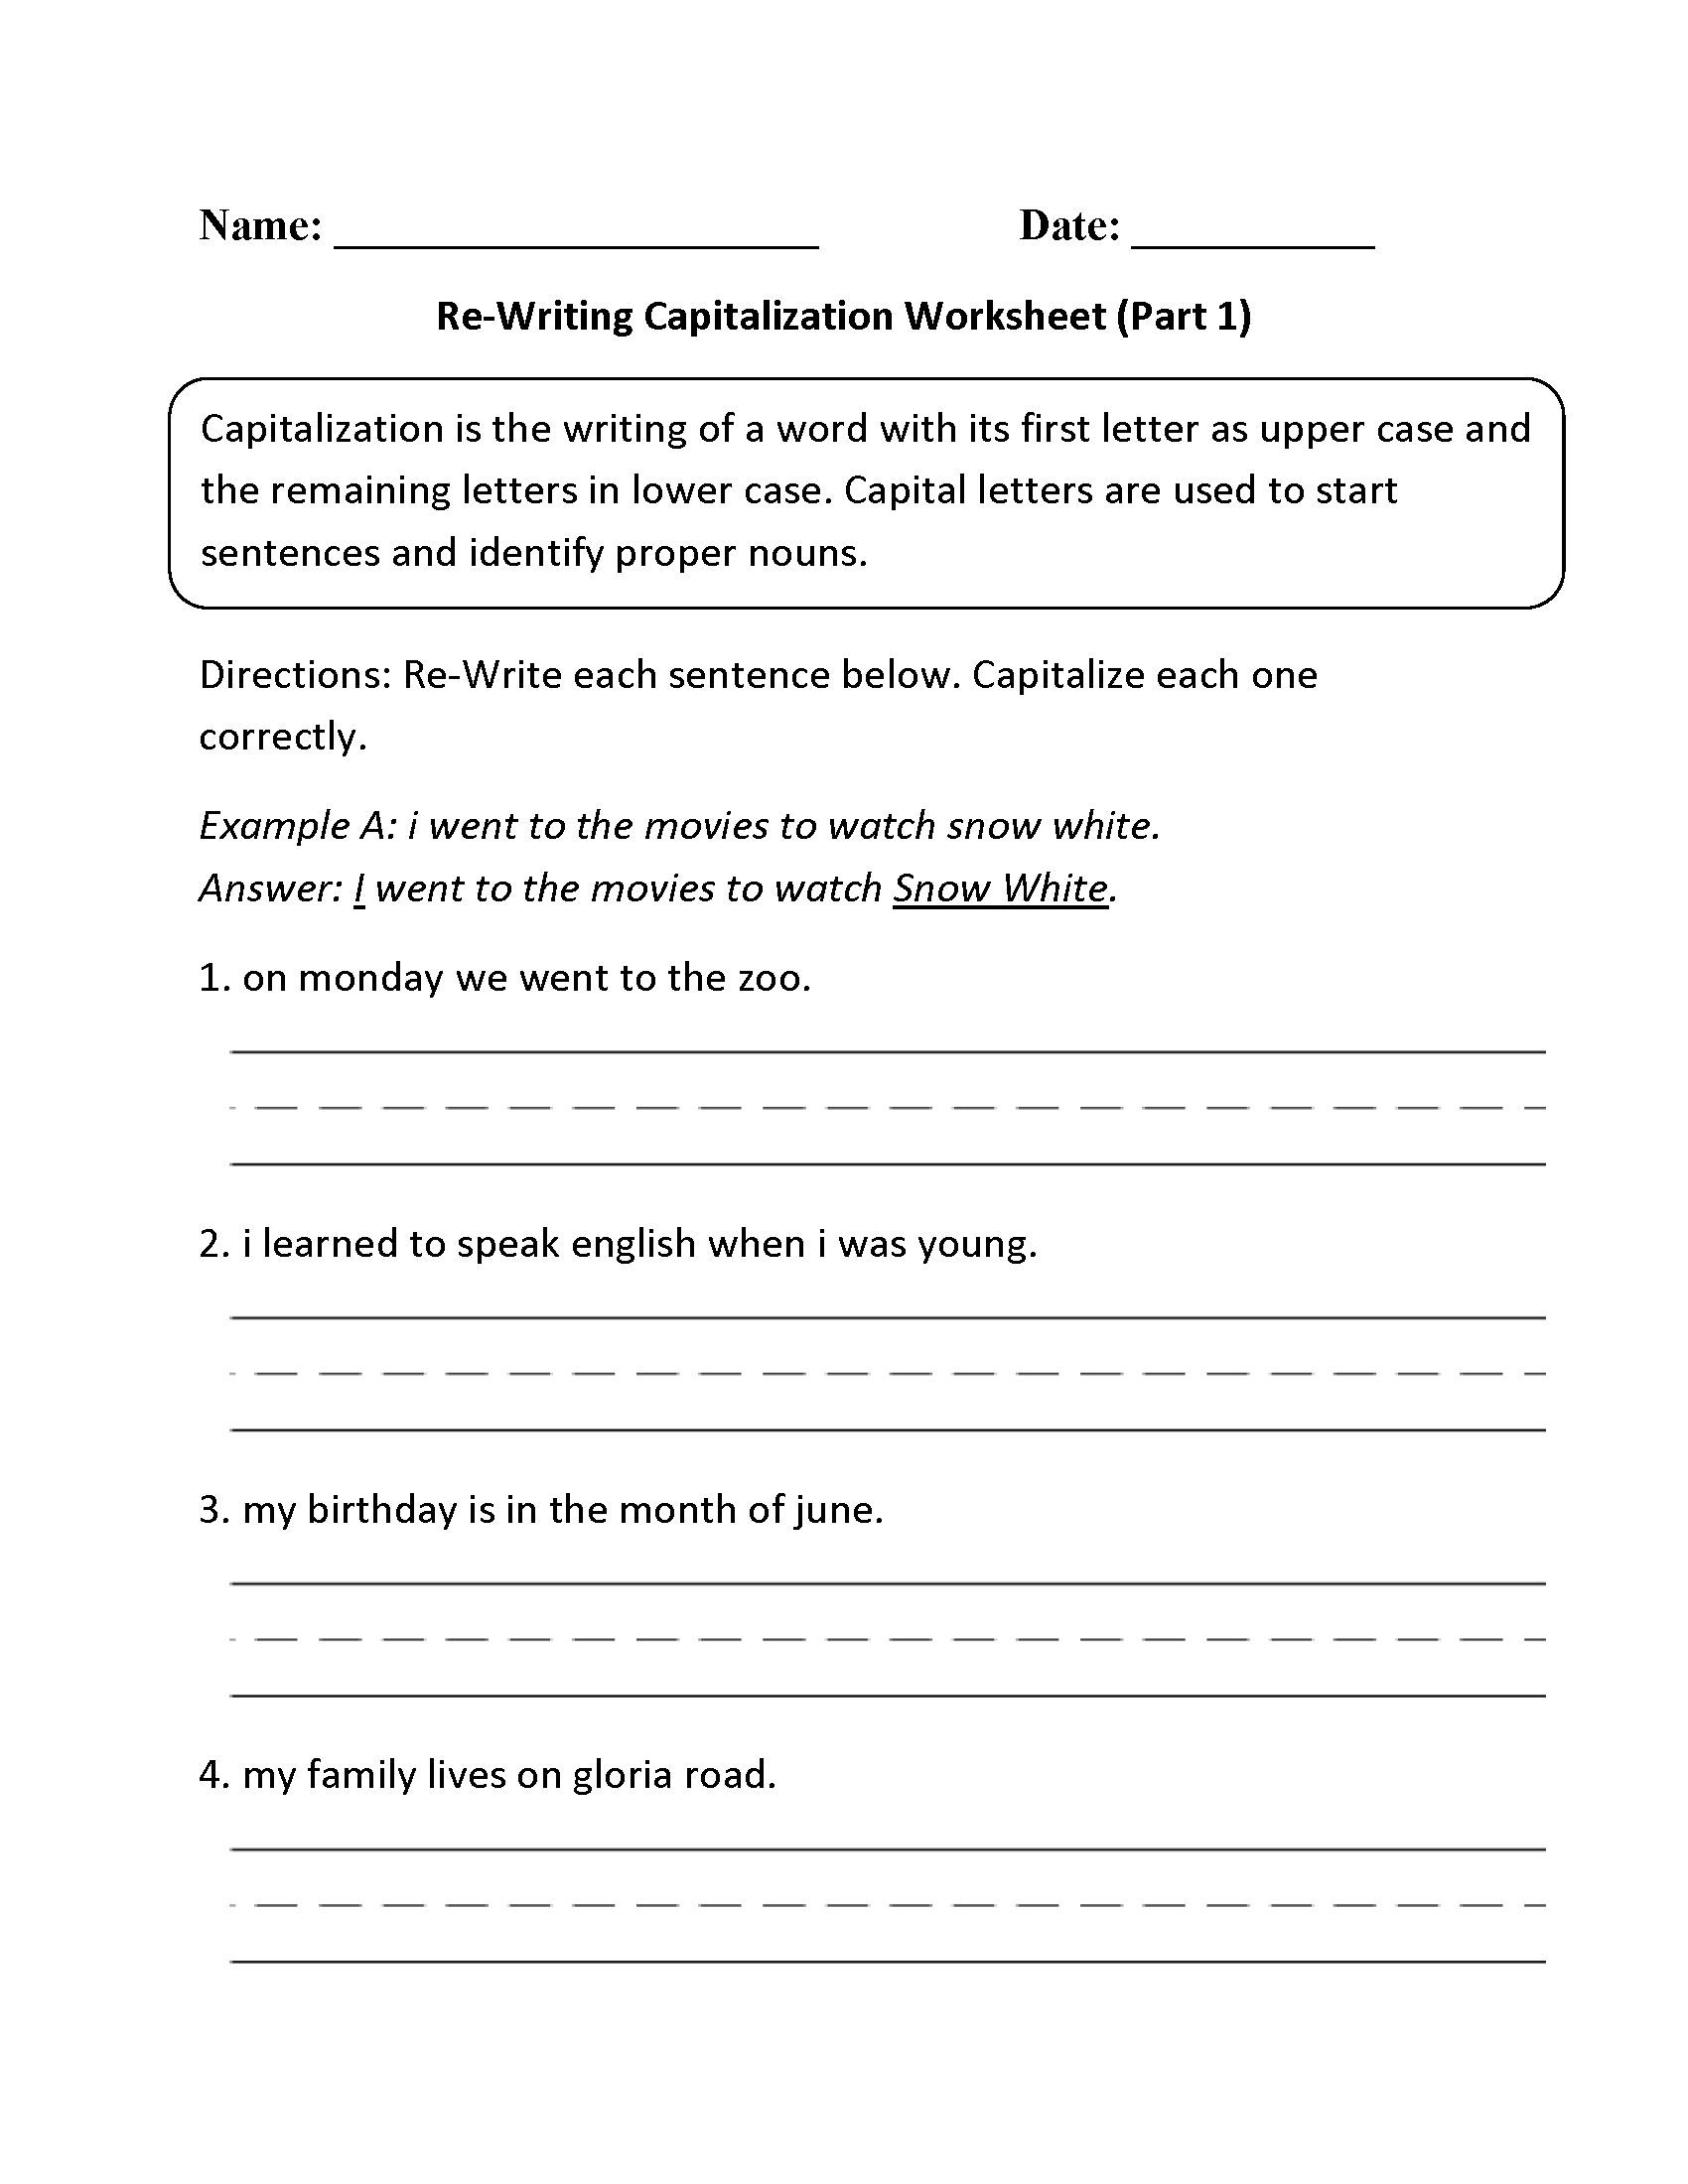 Worksheet On Articles For Grade 9